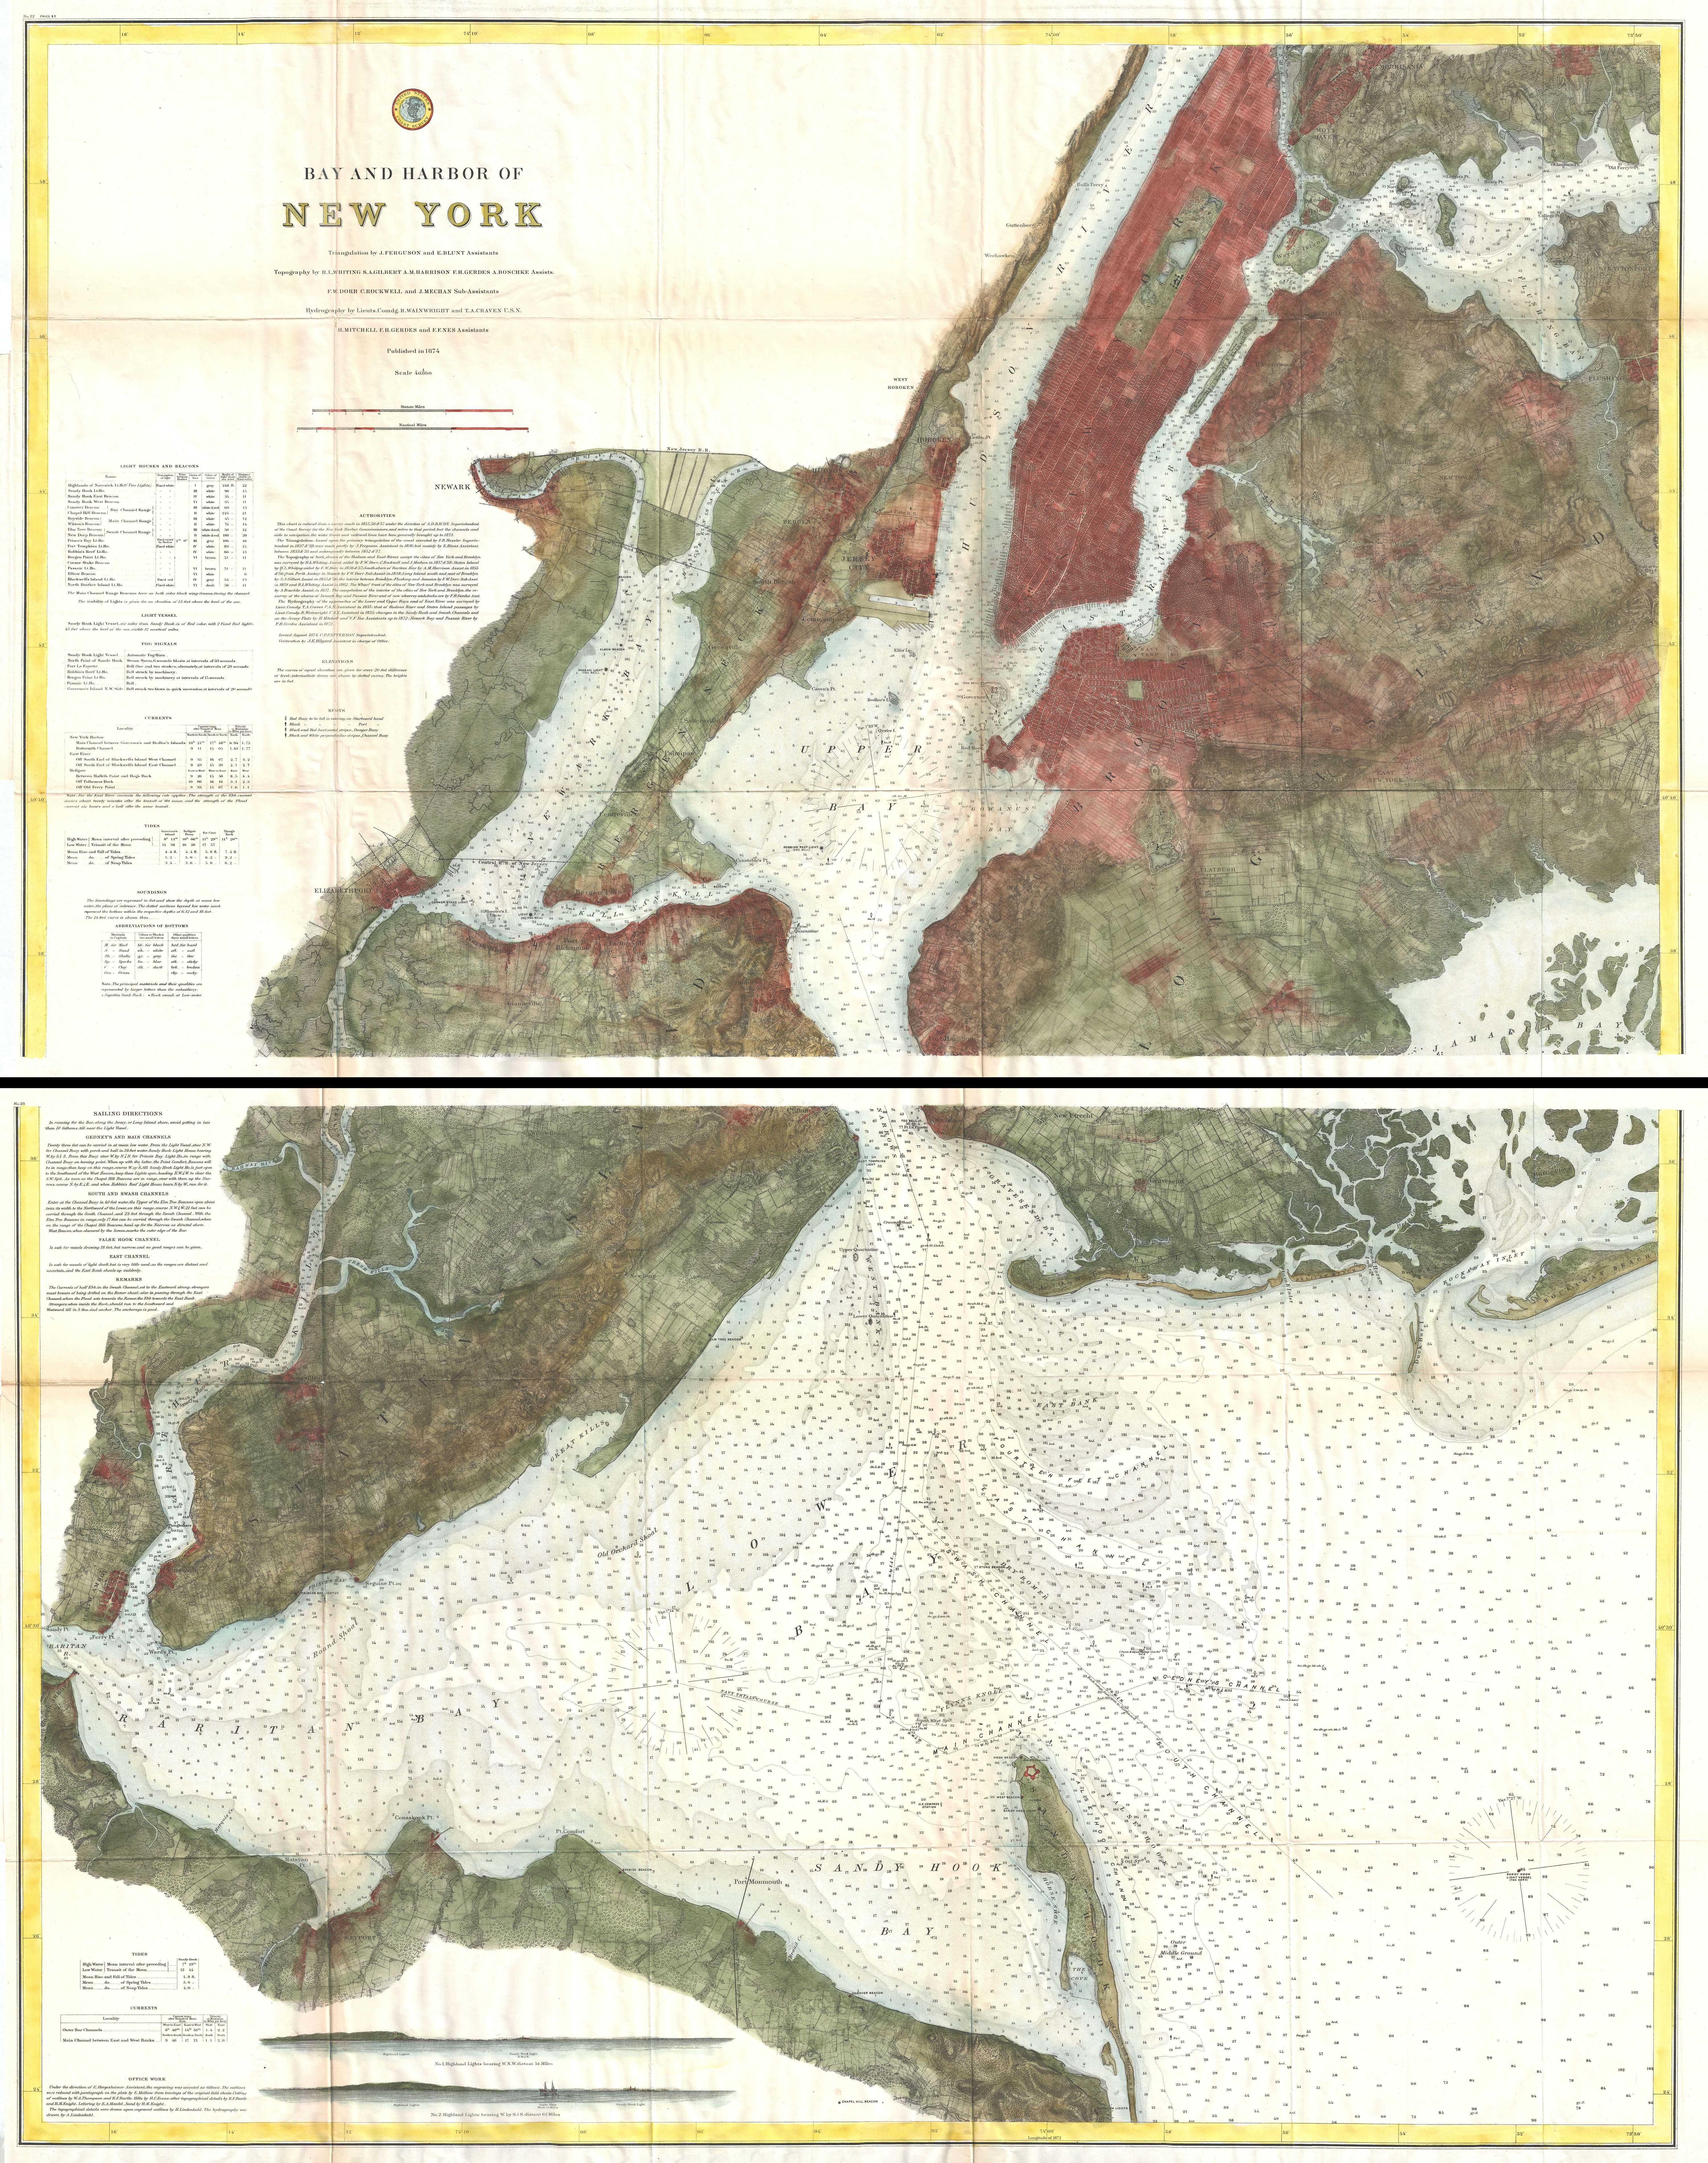 File US Coast Survey Map Of New York City Bay And Harbor - Map cities wikimedia us